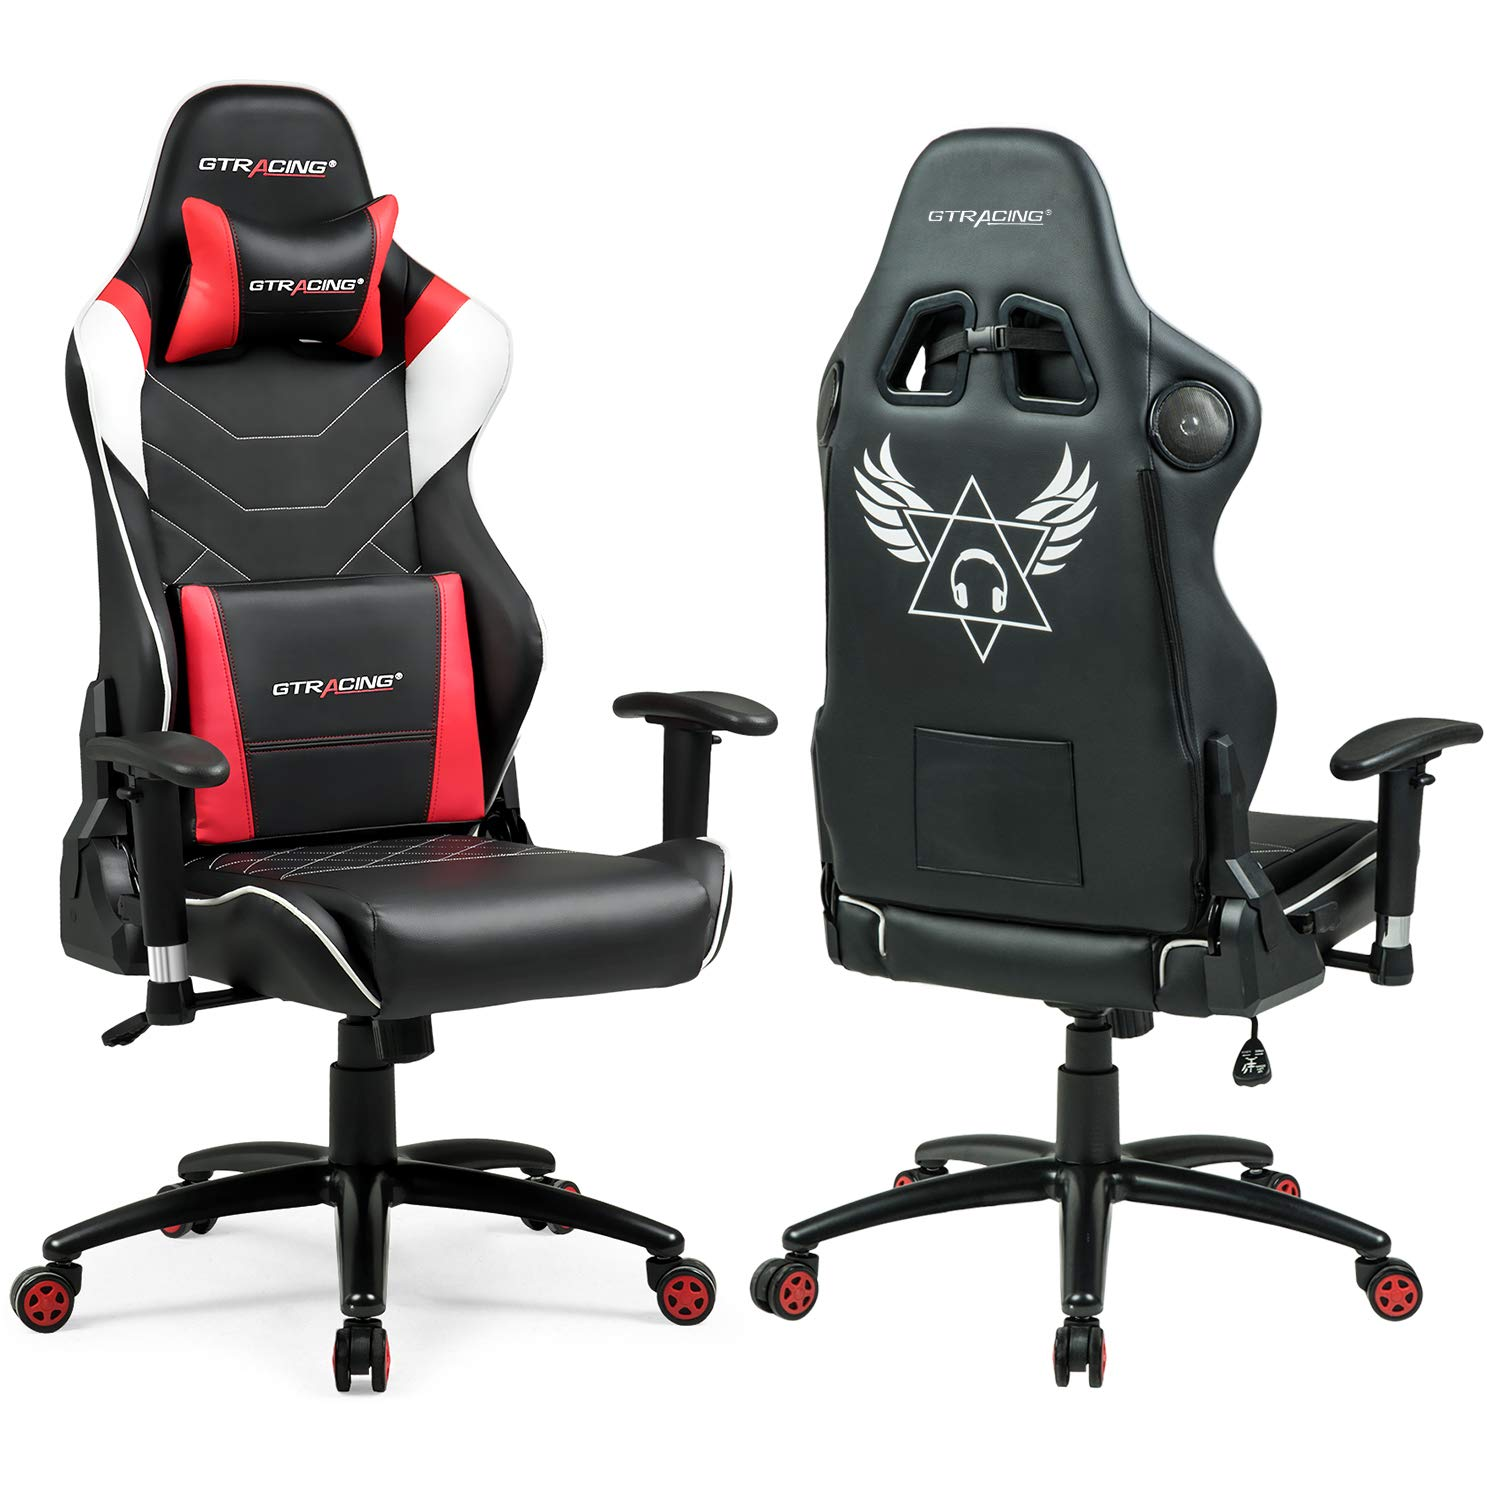 Office chair with speakers Unique Computer Gtracing Audio Gaming Chair With Bluetooth Speakerpatented Music Racing Office Chair Heavy Duty 400lbs Ergonomic Esports Chair For Pro Gamer Gt899 Red Amazoncom Amazoncom Gtracing Audio Gaming Chair With Bluetooth Speaker